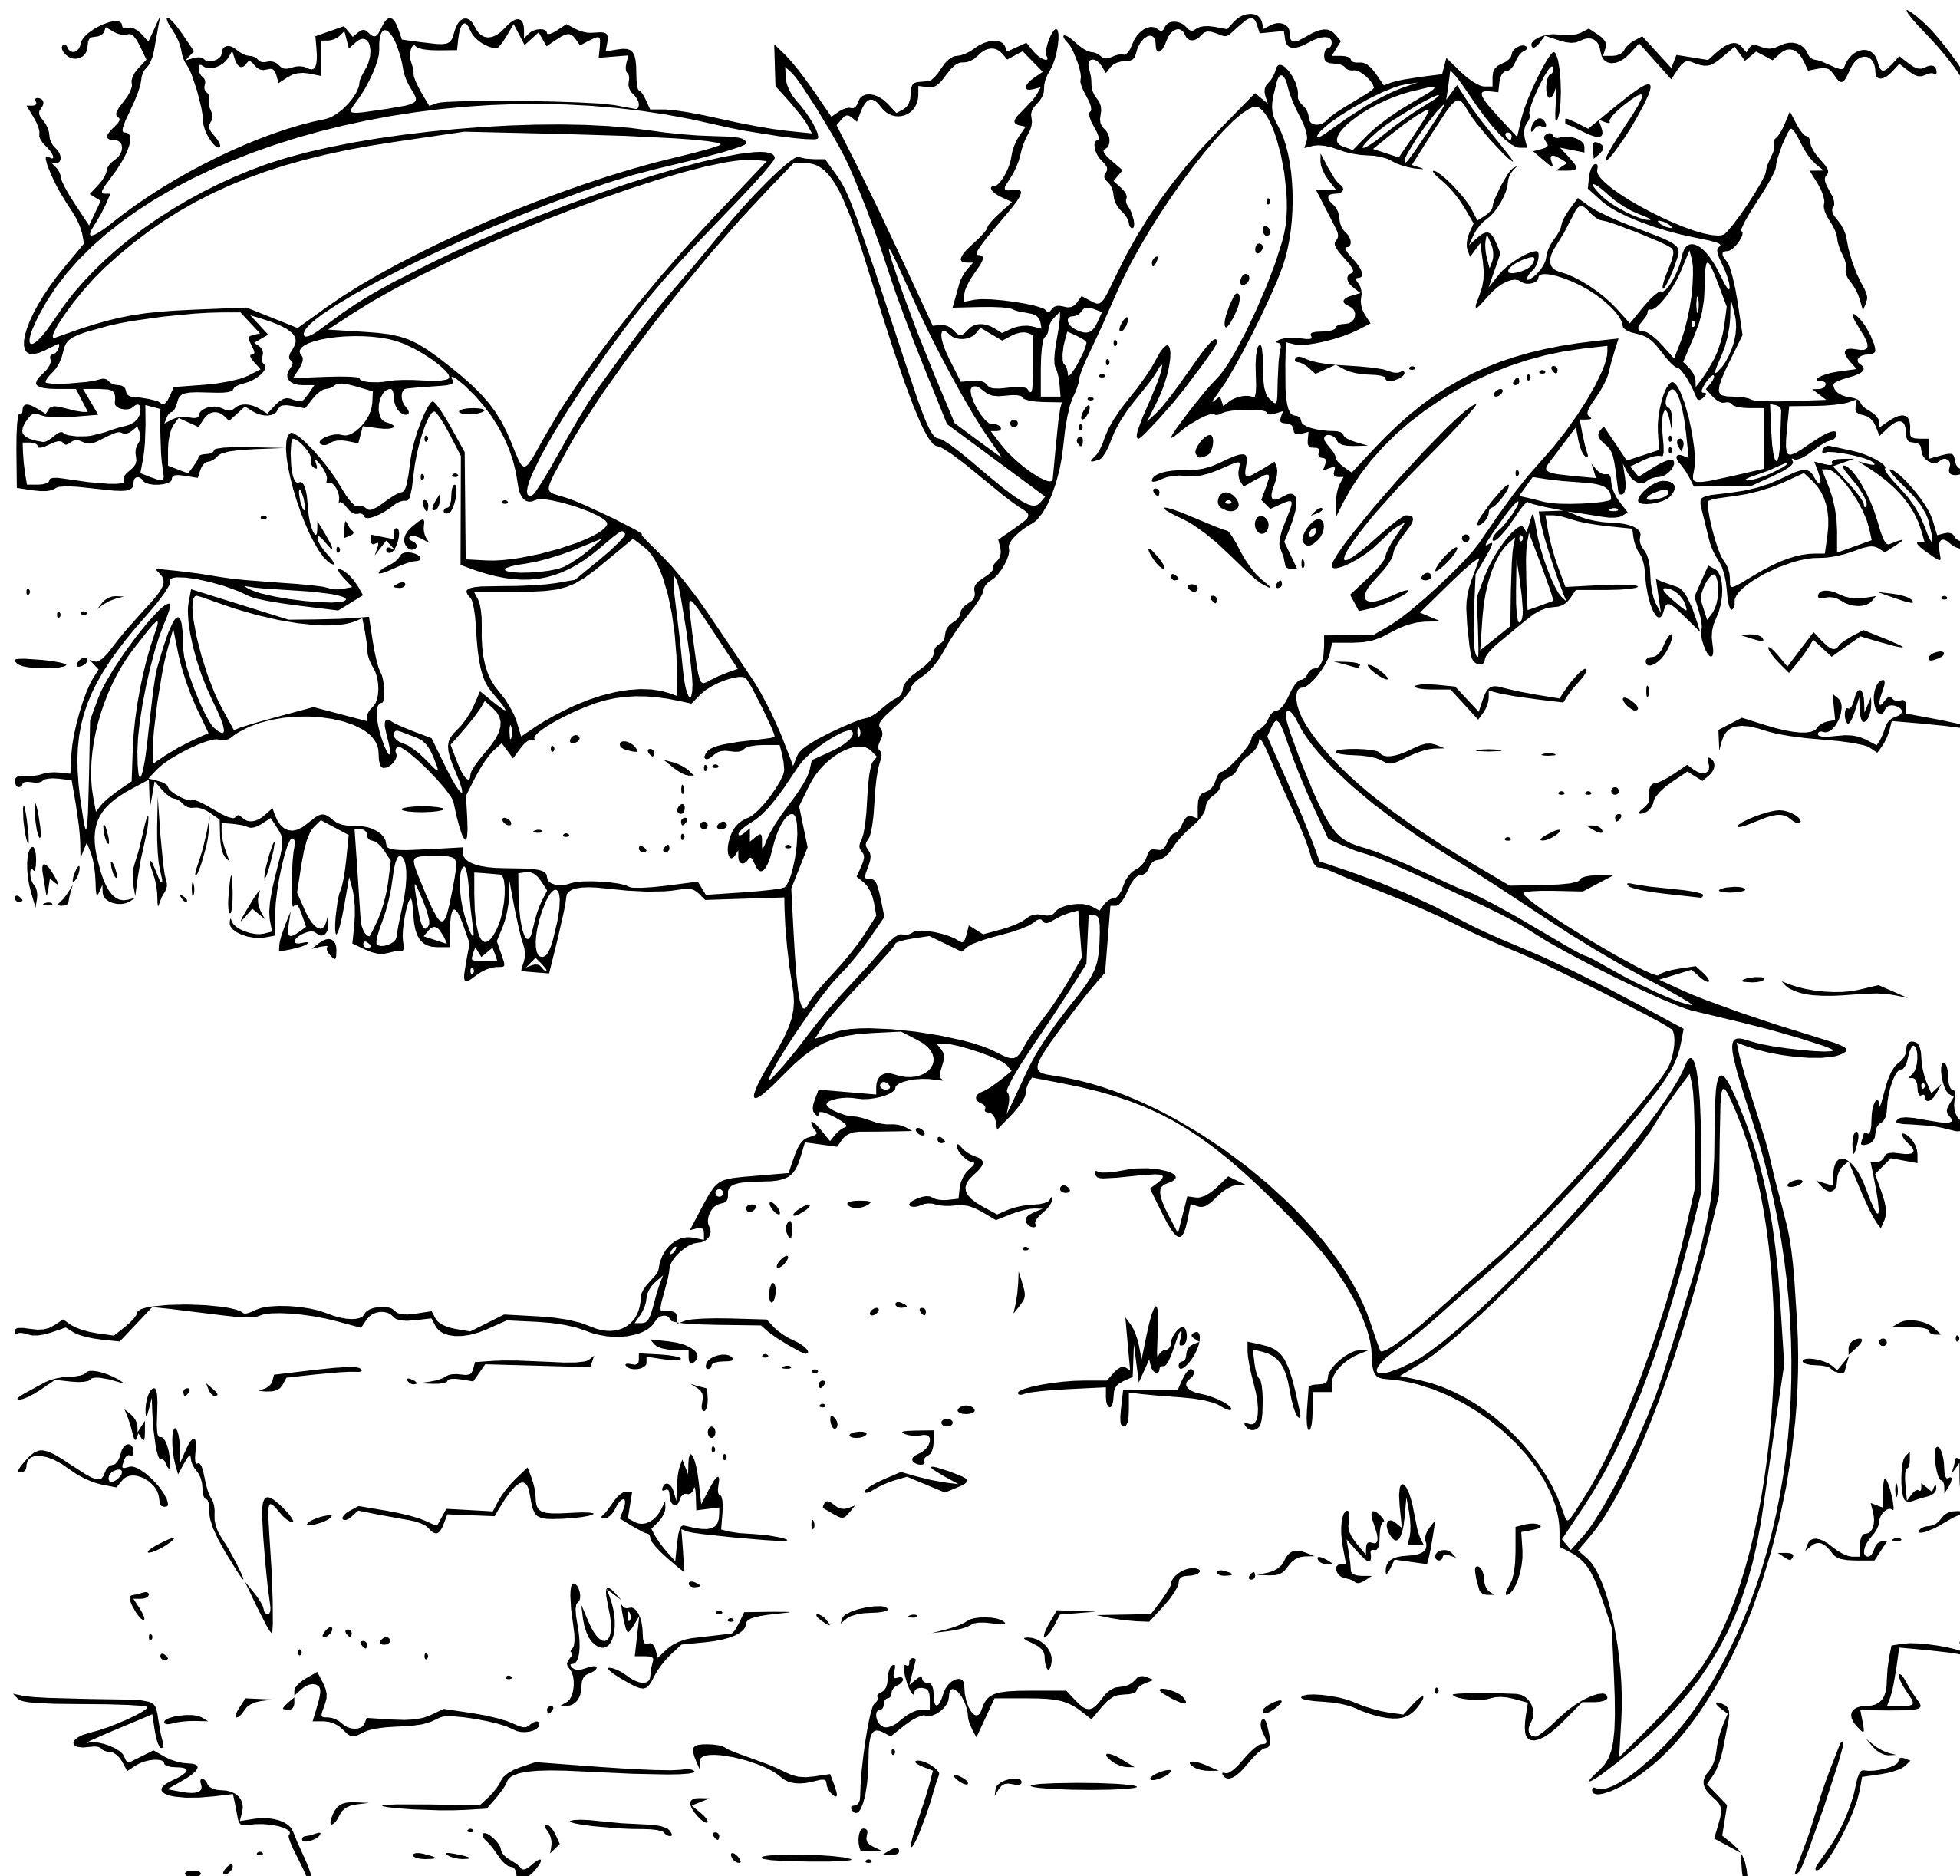 This is a graphic of Unusual Bats Coloring Pages